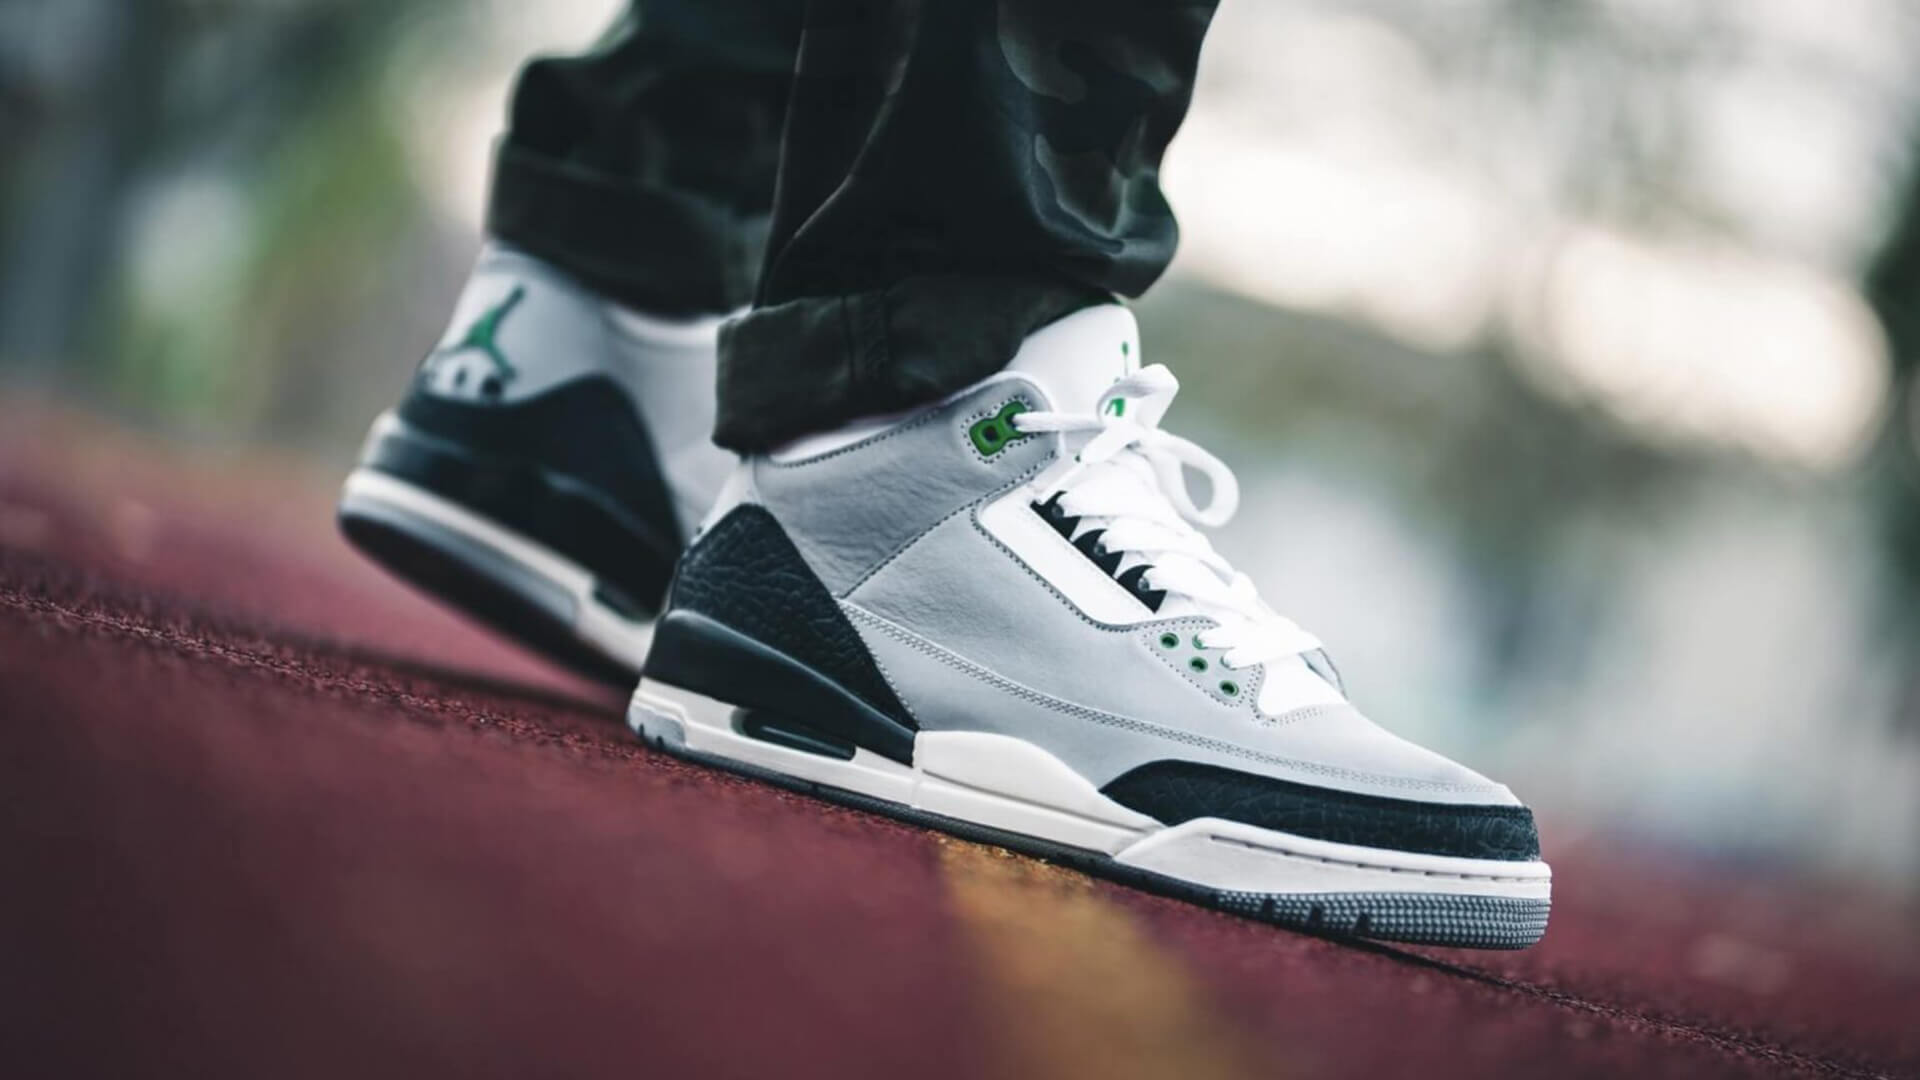 womens Air jordan 3 Latest Nike Air Jordan 3 Trainer Releases & Next Drops | The Sole ...